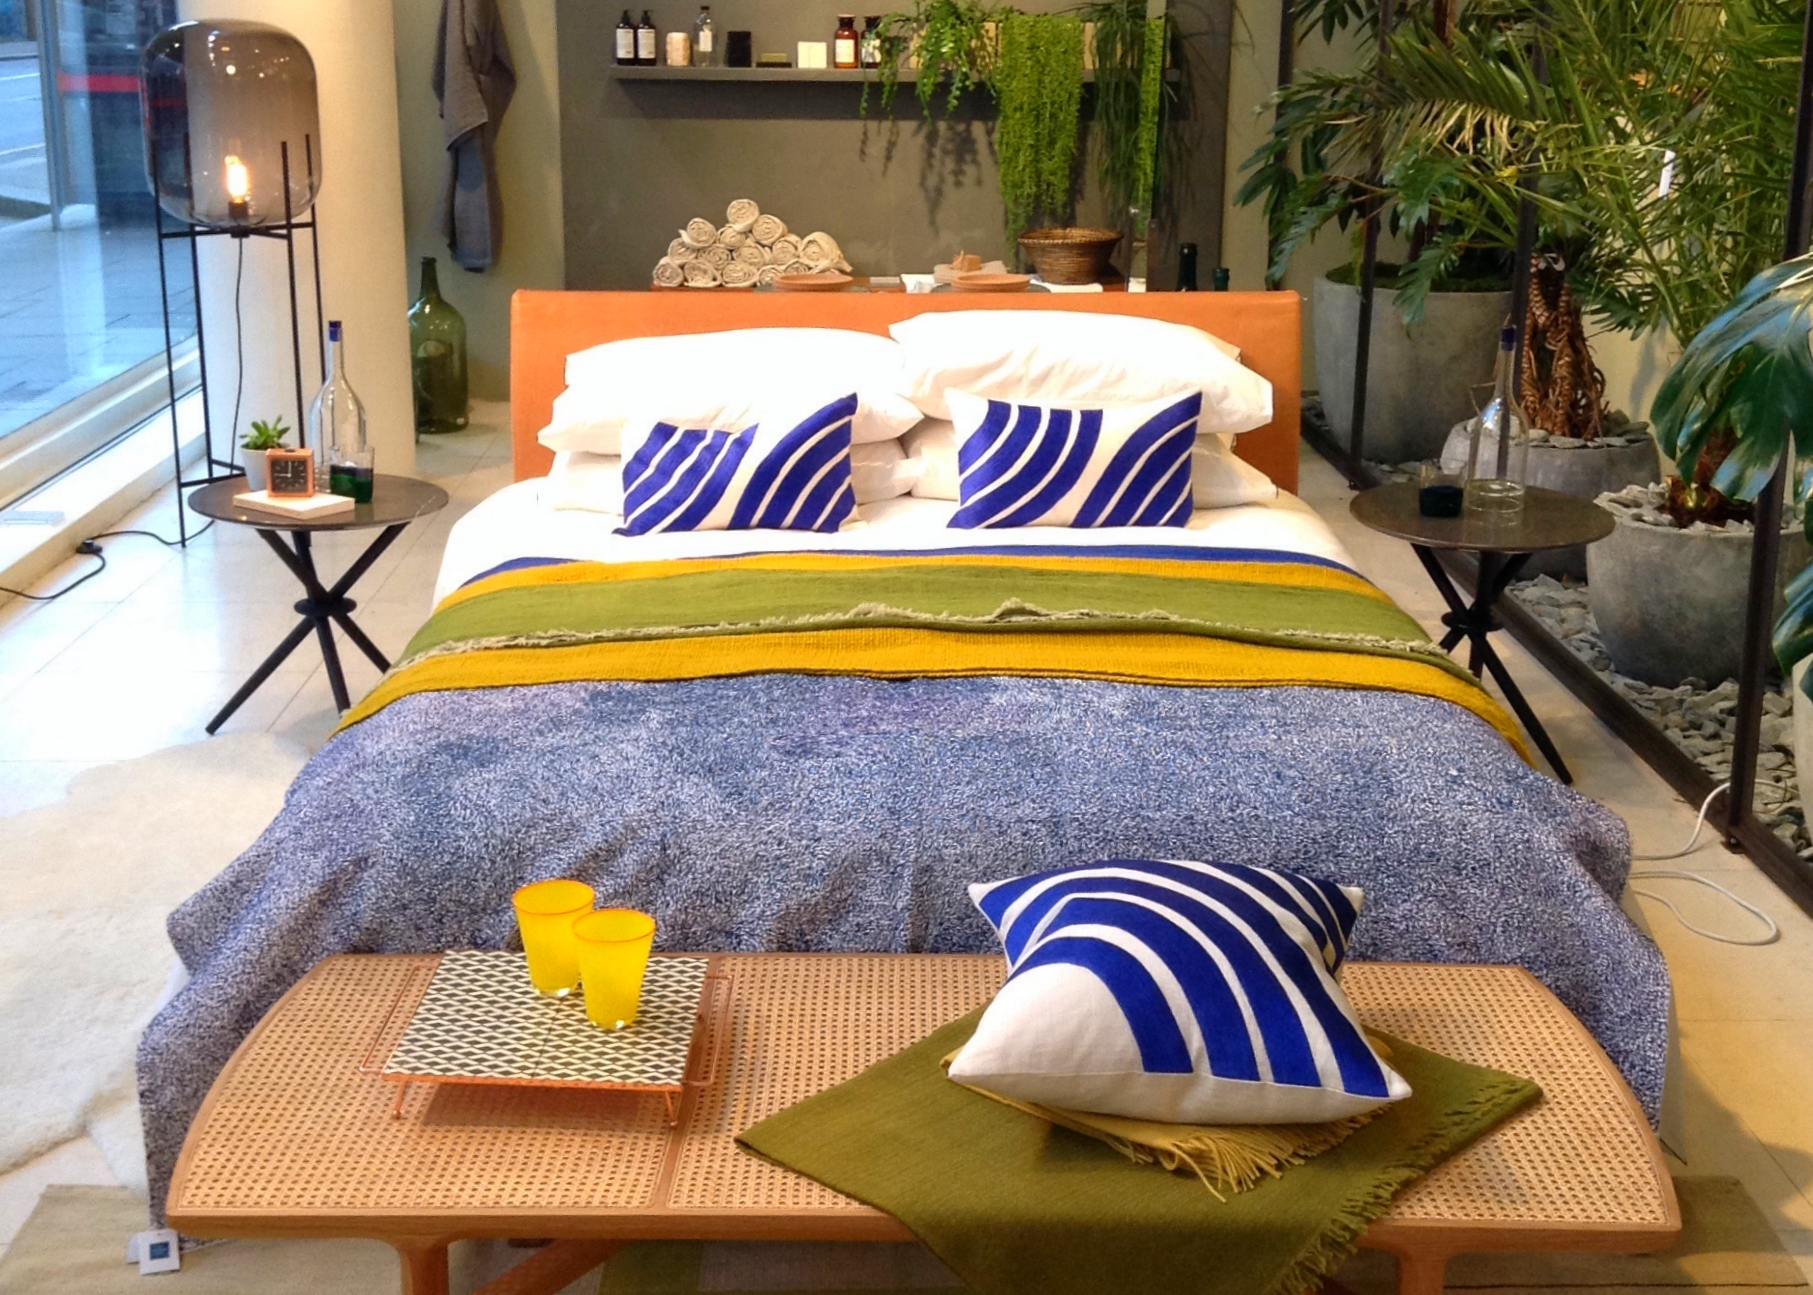 A bed display at the Conran Shop